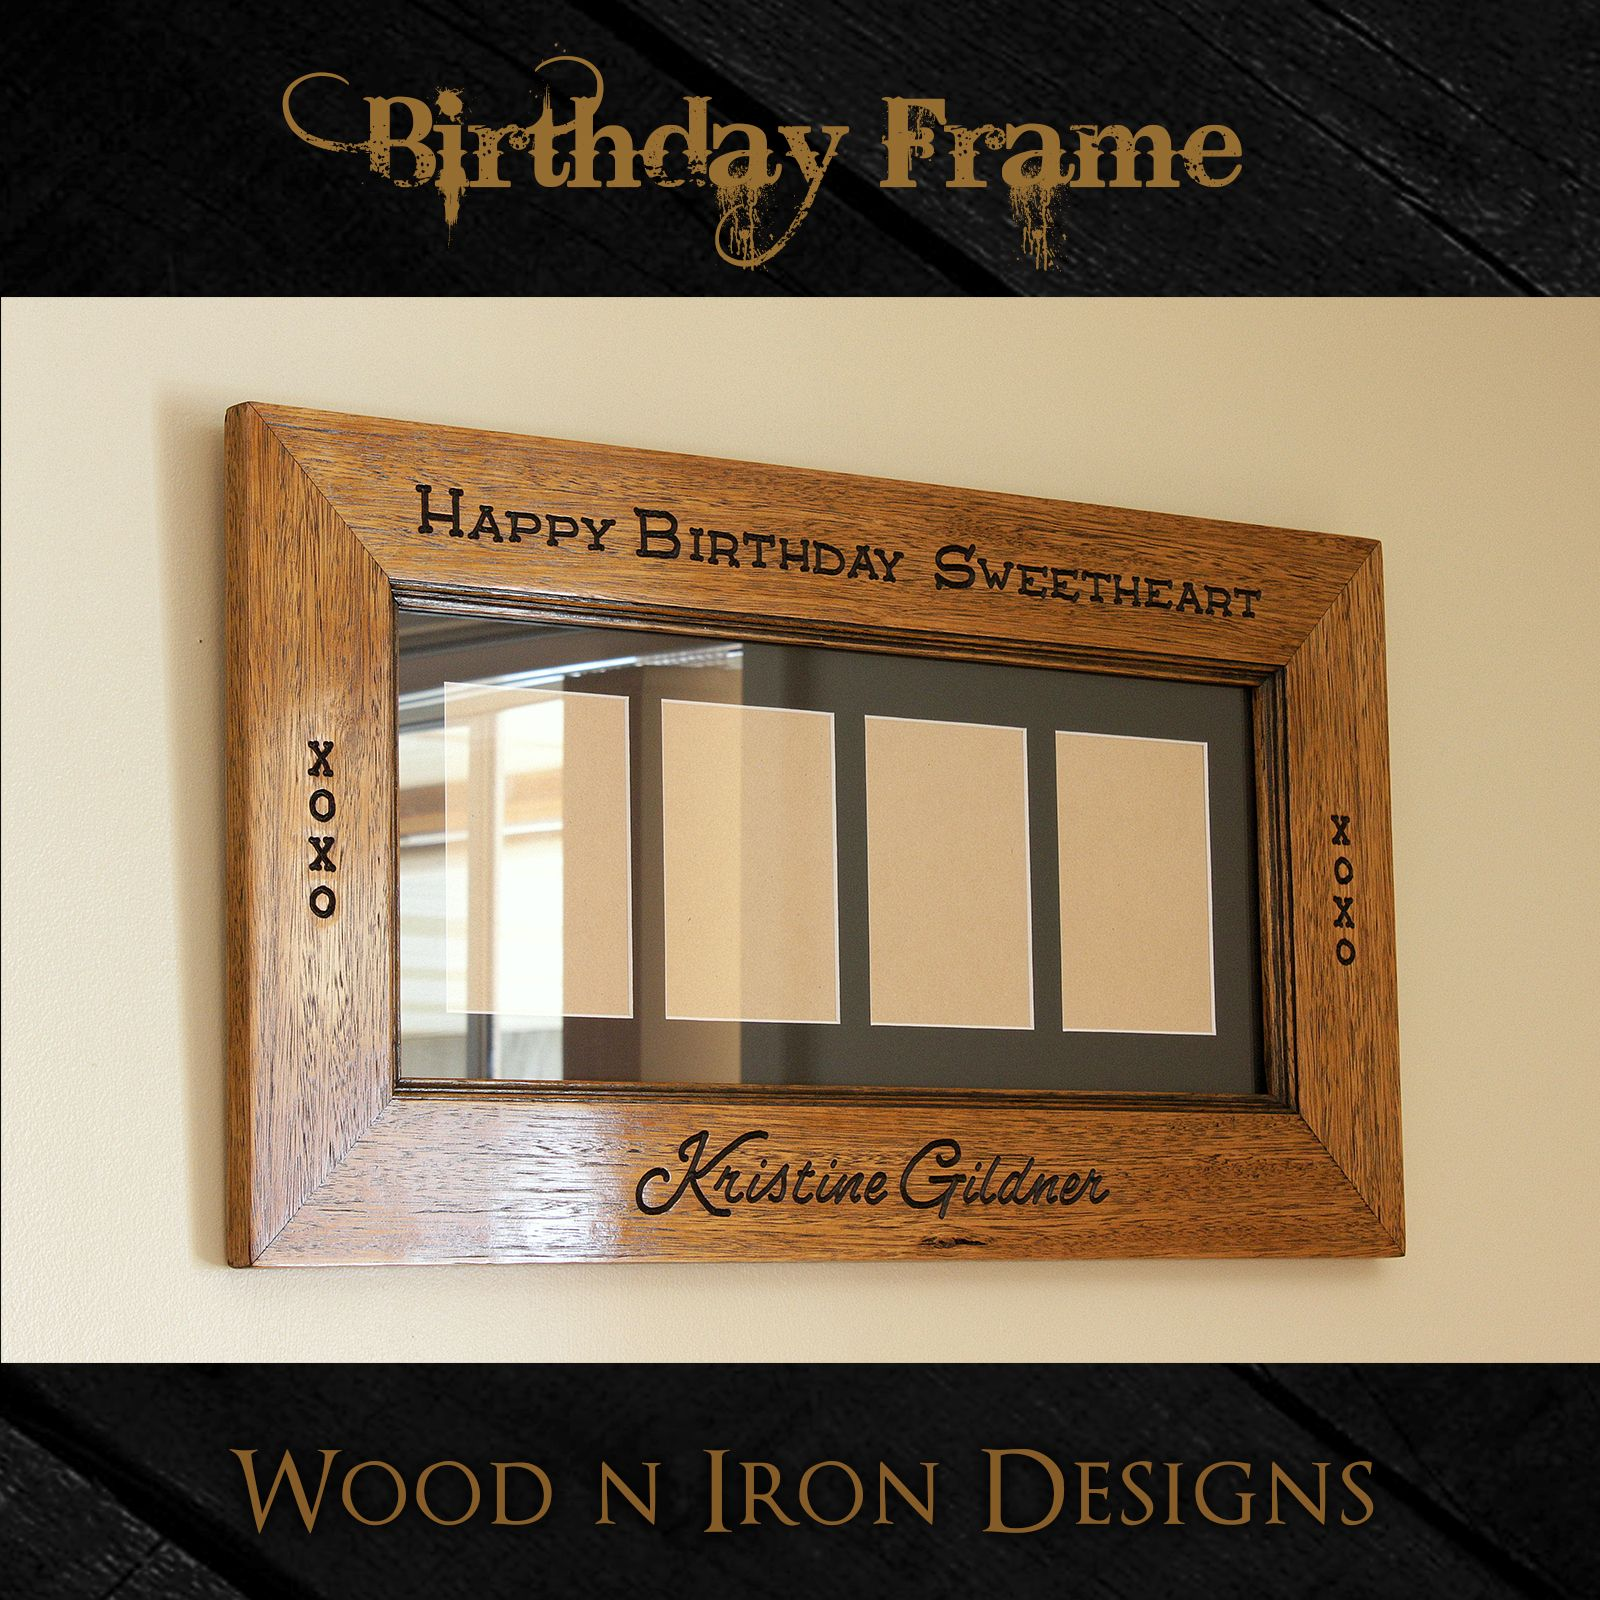 Birthday Name Frame